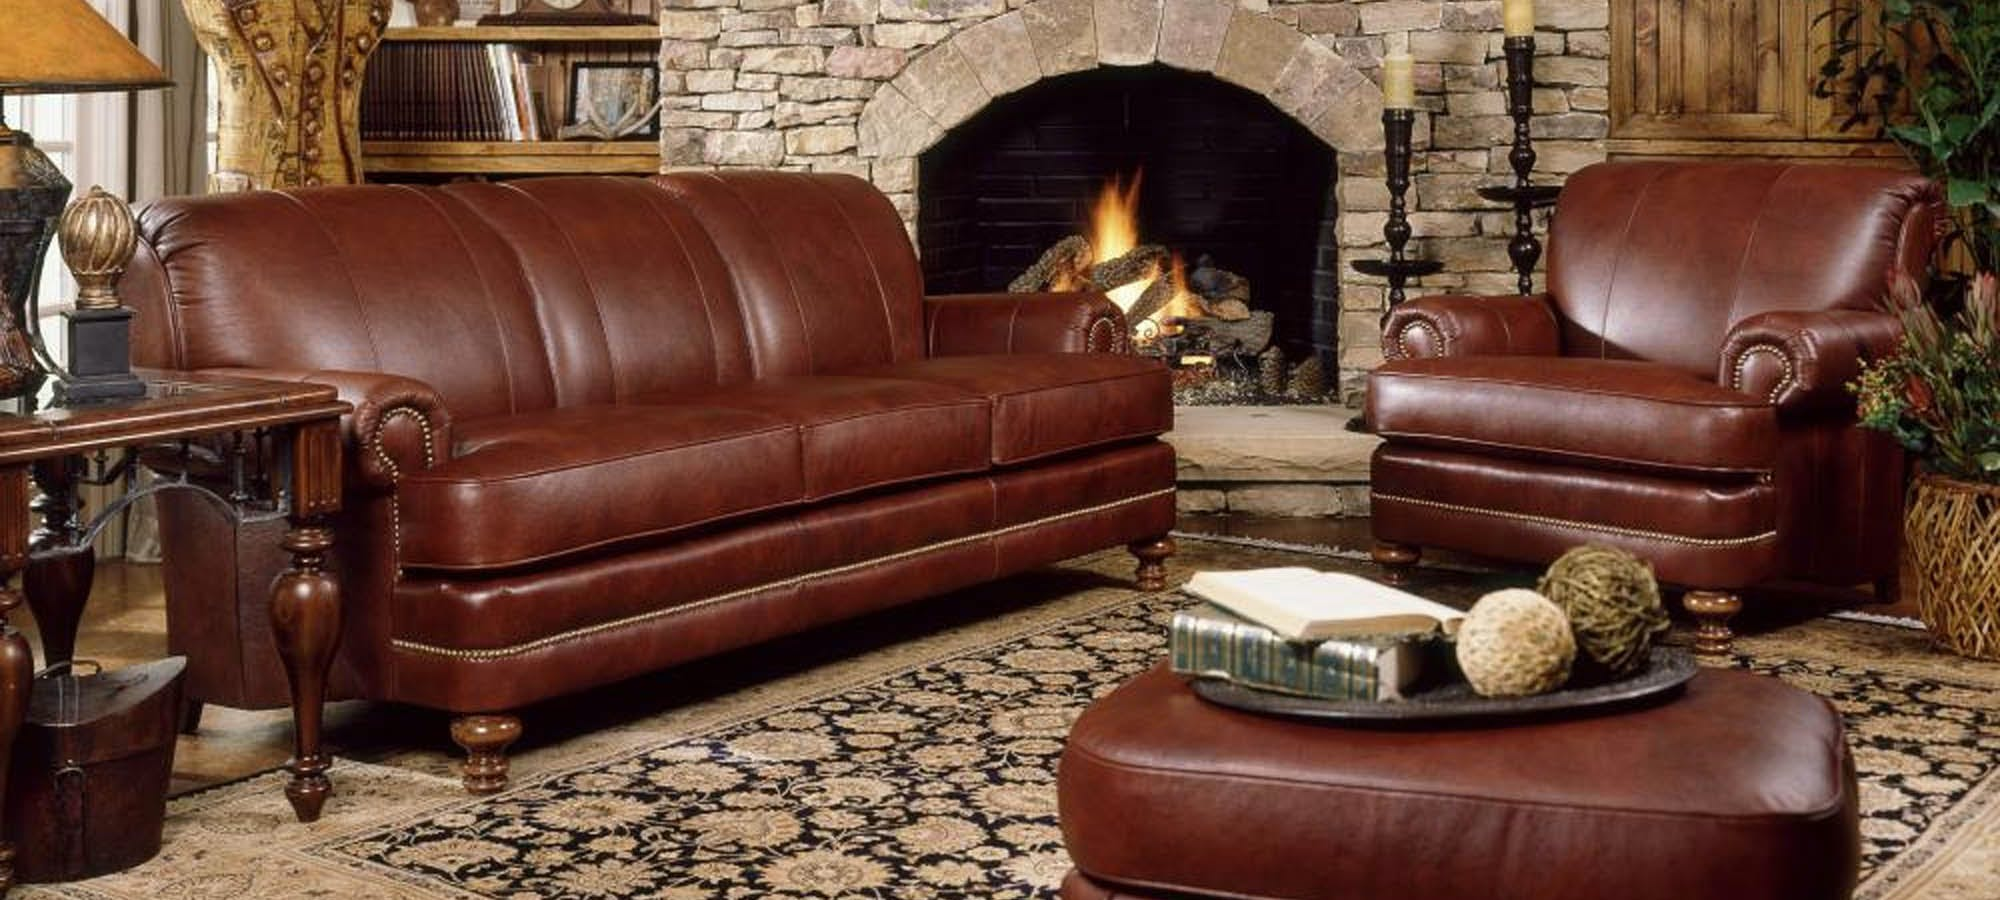 Shop For Living Room Furniture In Cincinnati And Dayton OH